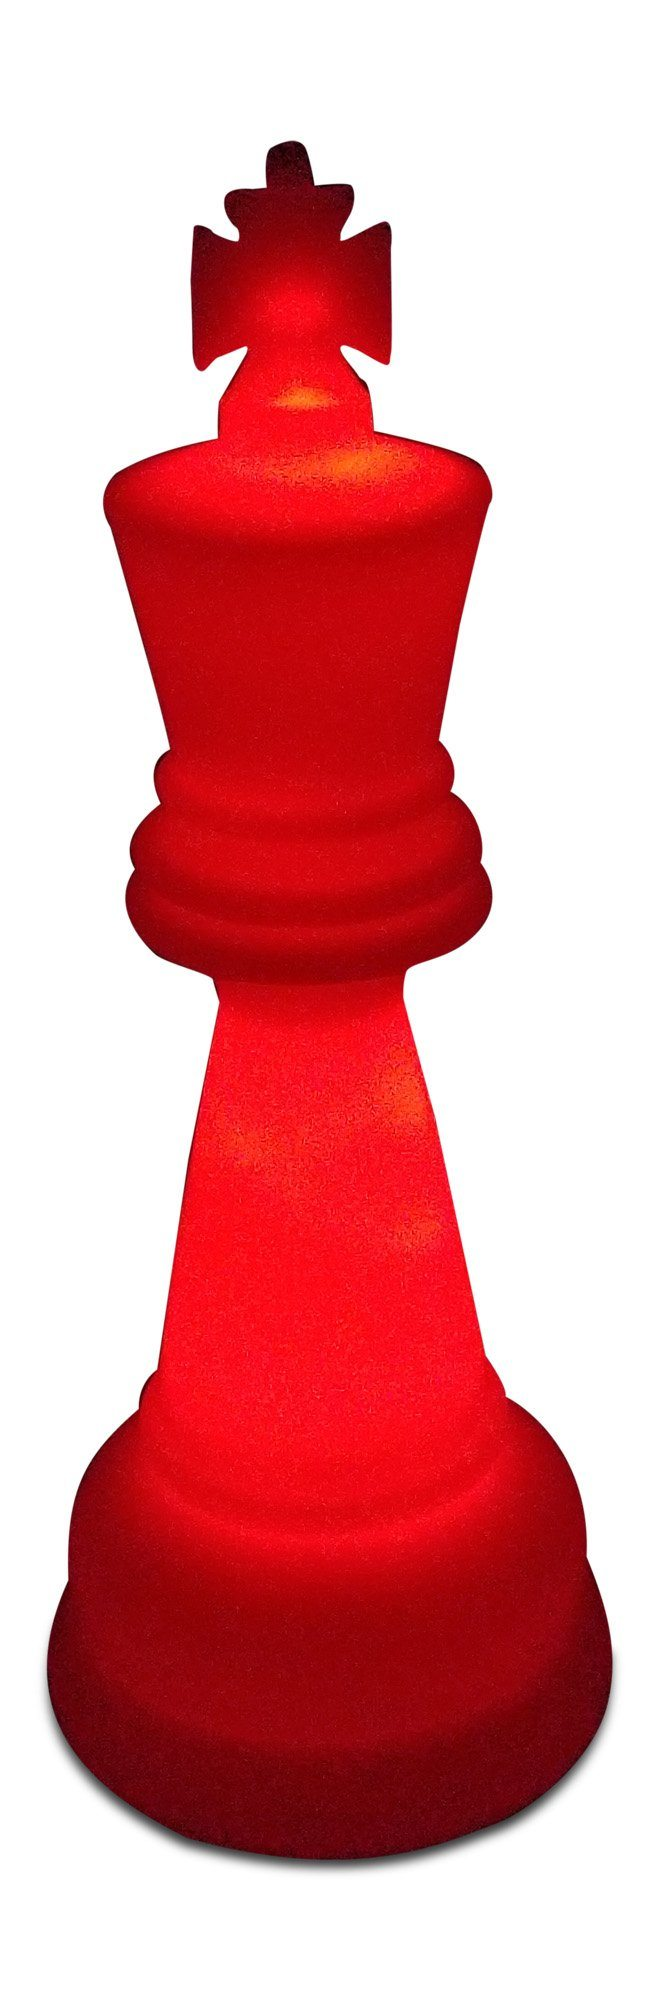 MegaChess 38 Inch Premium Plastic King Light-Up Giant Chess Piece - Red | Default Title | GiantChessUSA